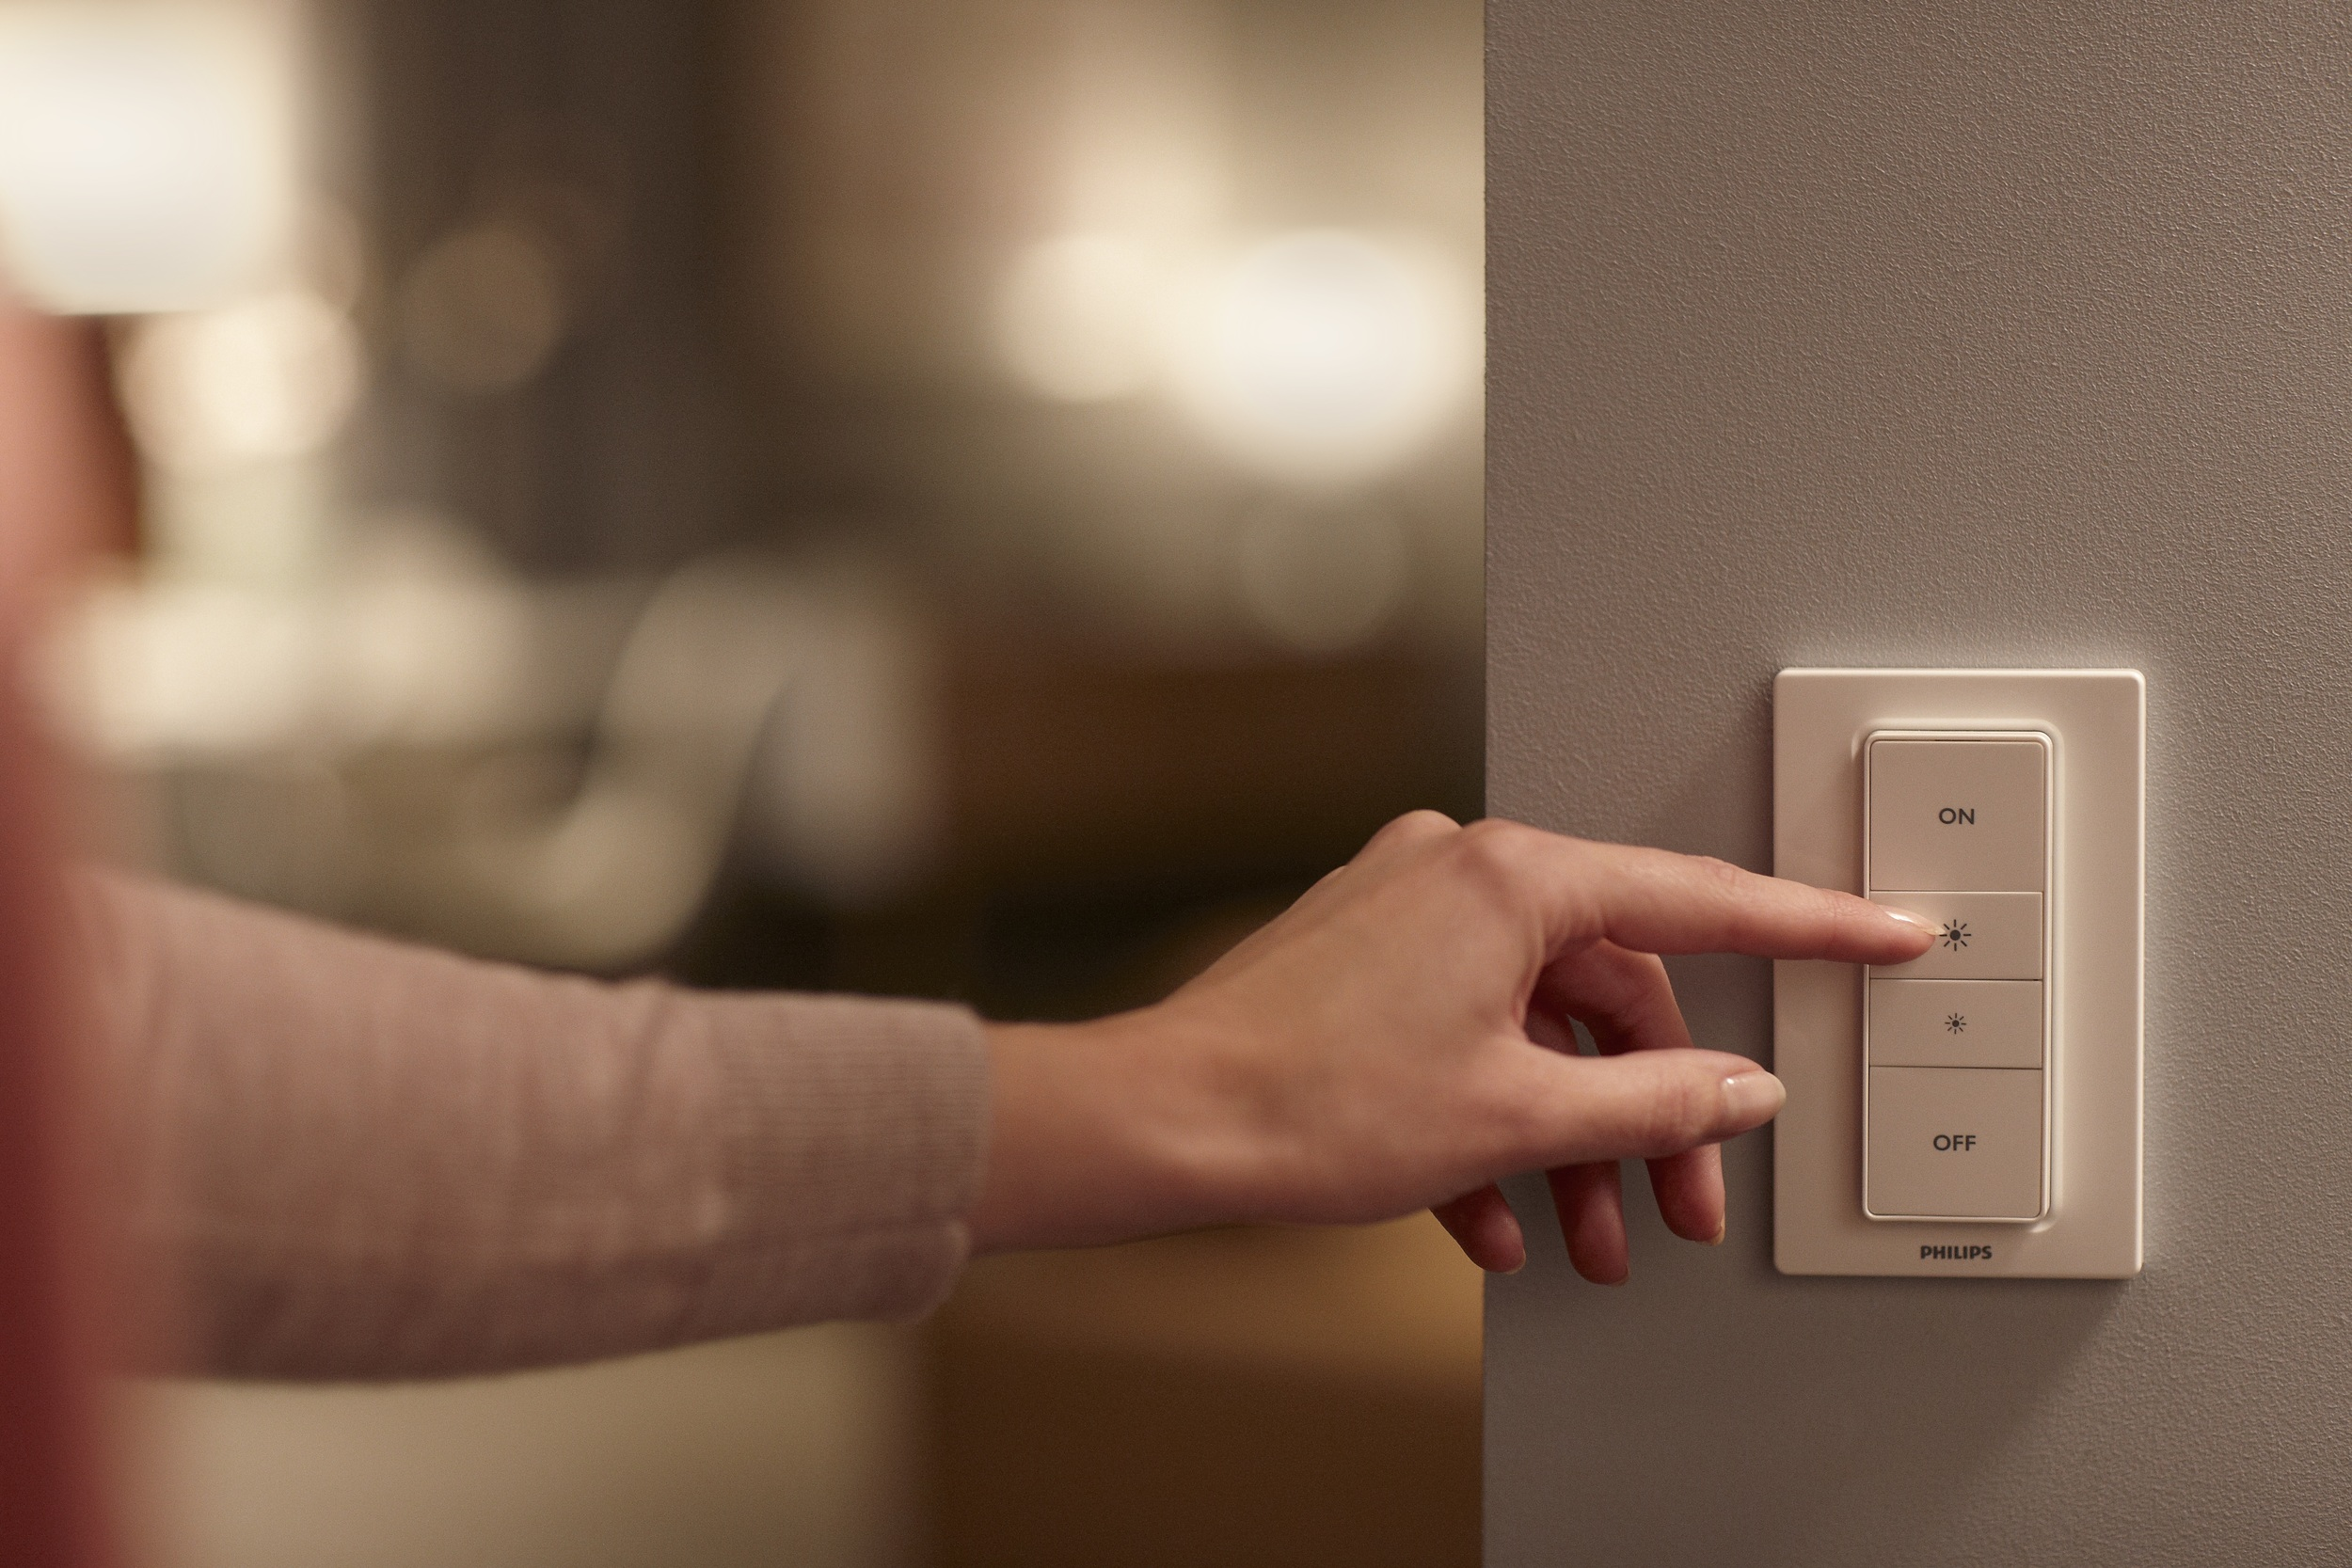 Philips Hue Dimmer Switch - Photograph courtesy of Philips